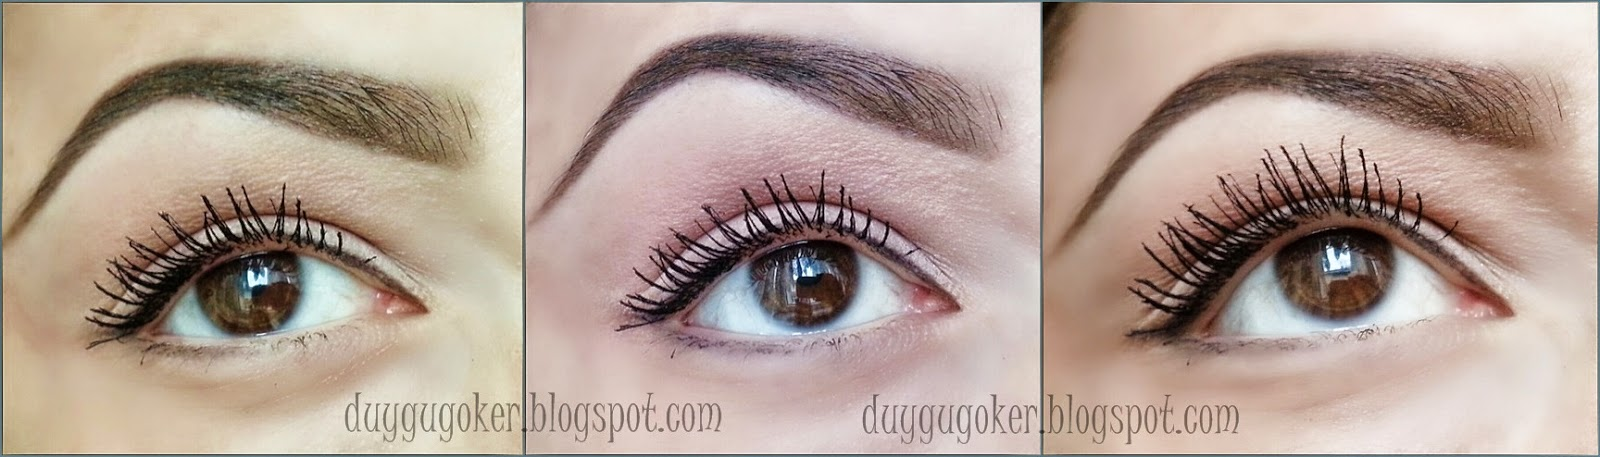 Kate Idol Mascara